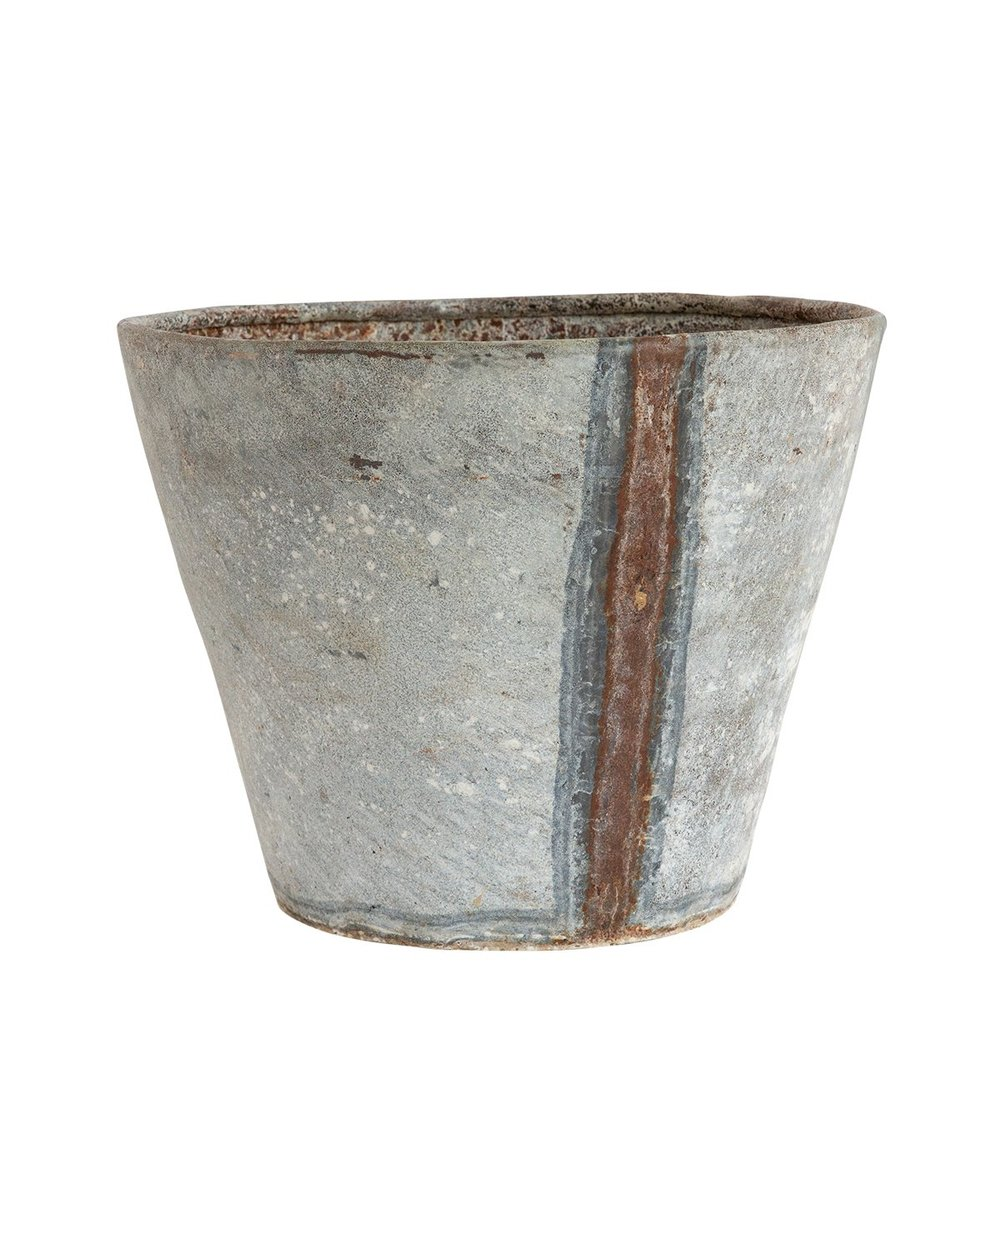 Distressed_Zinc_Planter_4.jpg